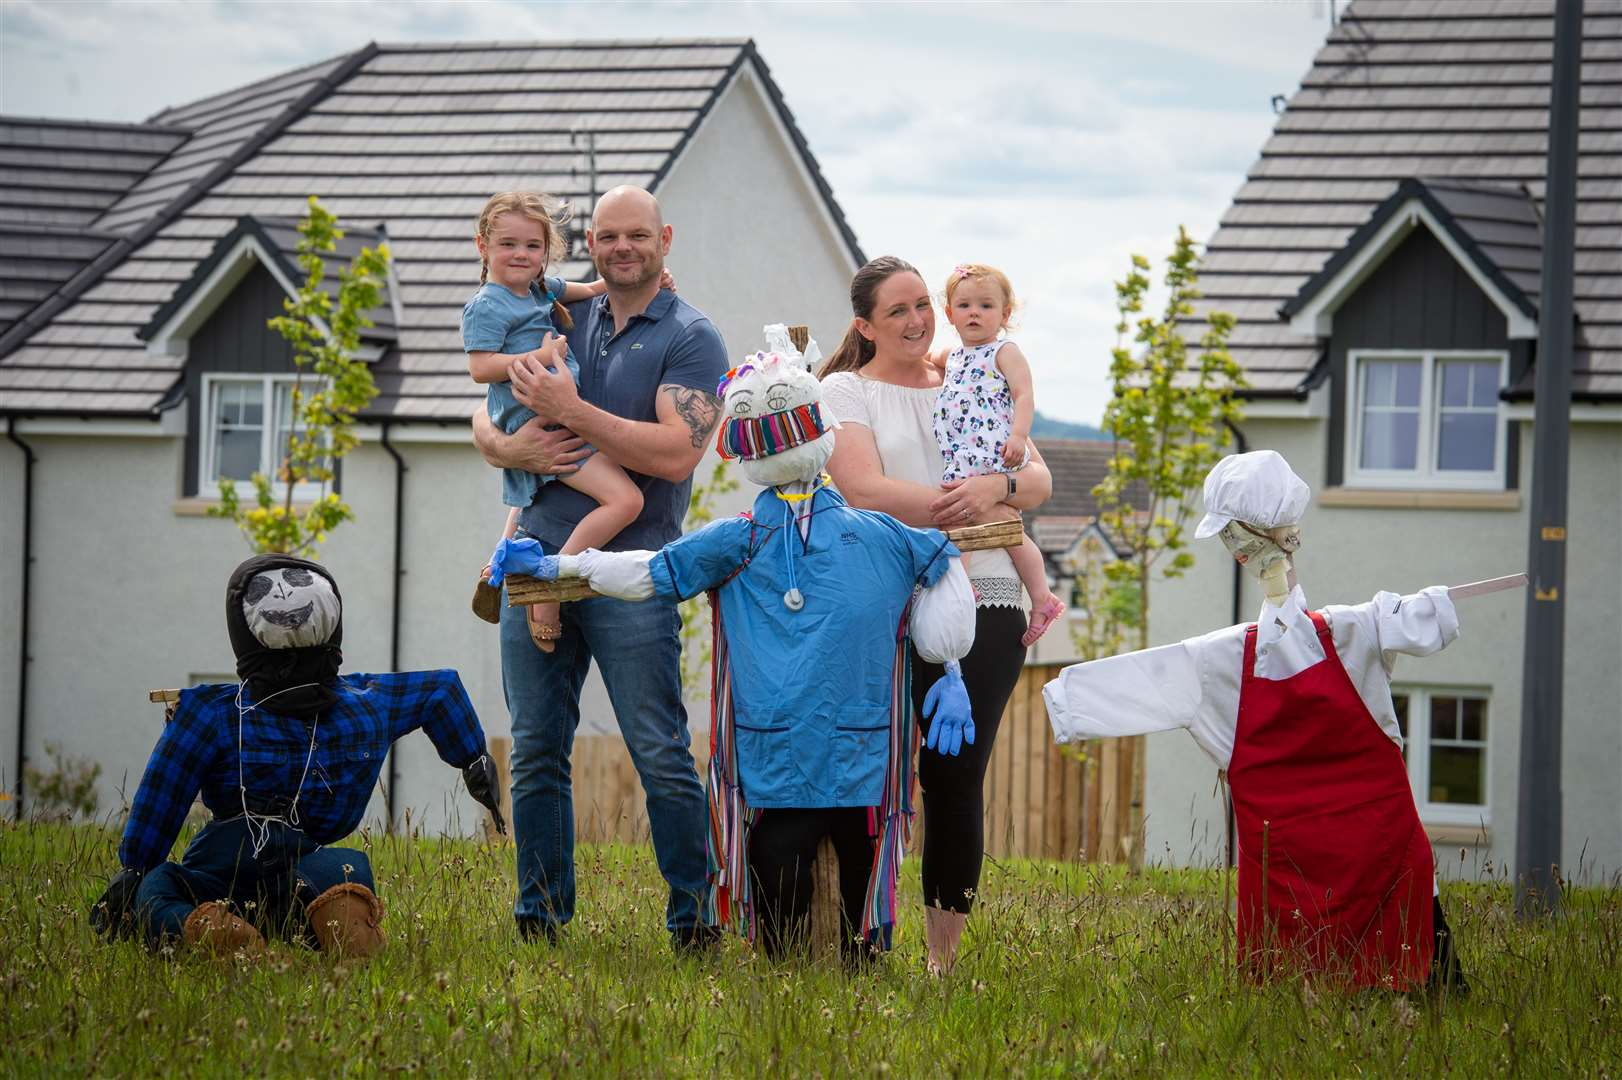 The Mackay family with their nurse-inspired superhero scarecrow. Nurse Barry Mackay with wife Jane and daughters Amber (4) and Autumn (18 months).